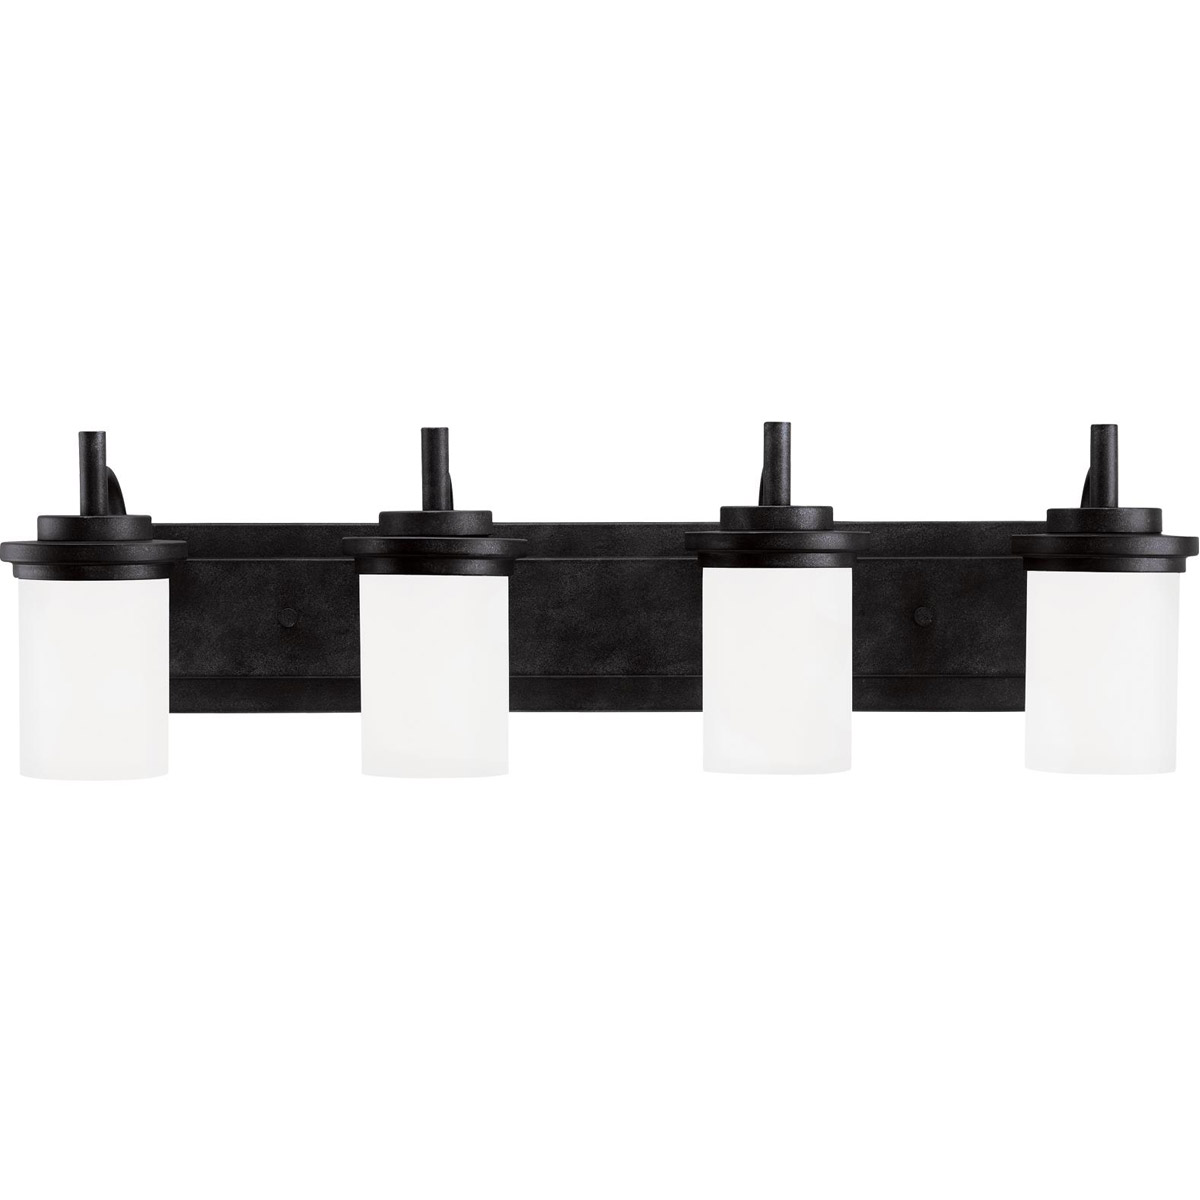 Sea Gull Lighting Winnetka 4 Light Bath Vanity in Blacksmith 44663-839